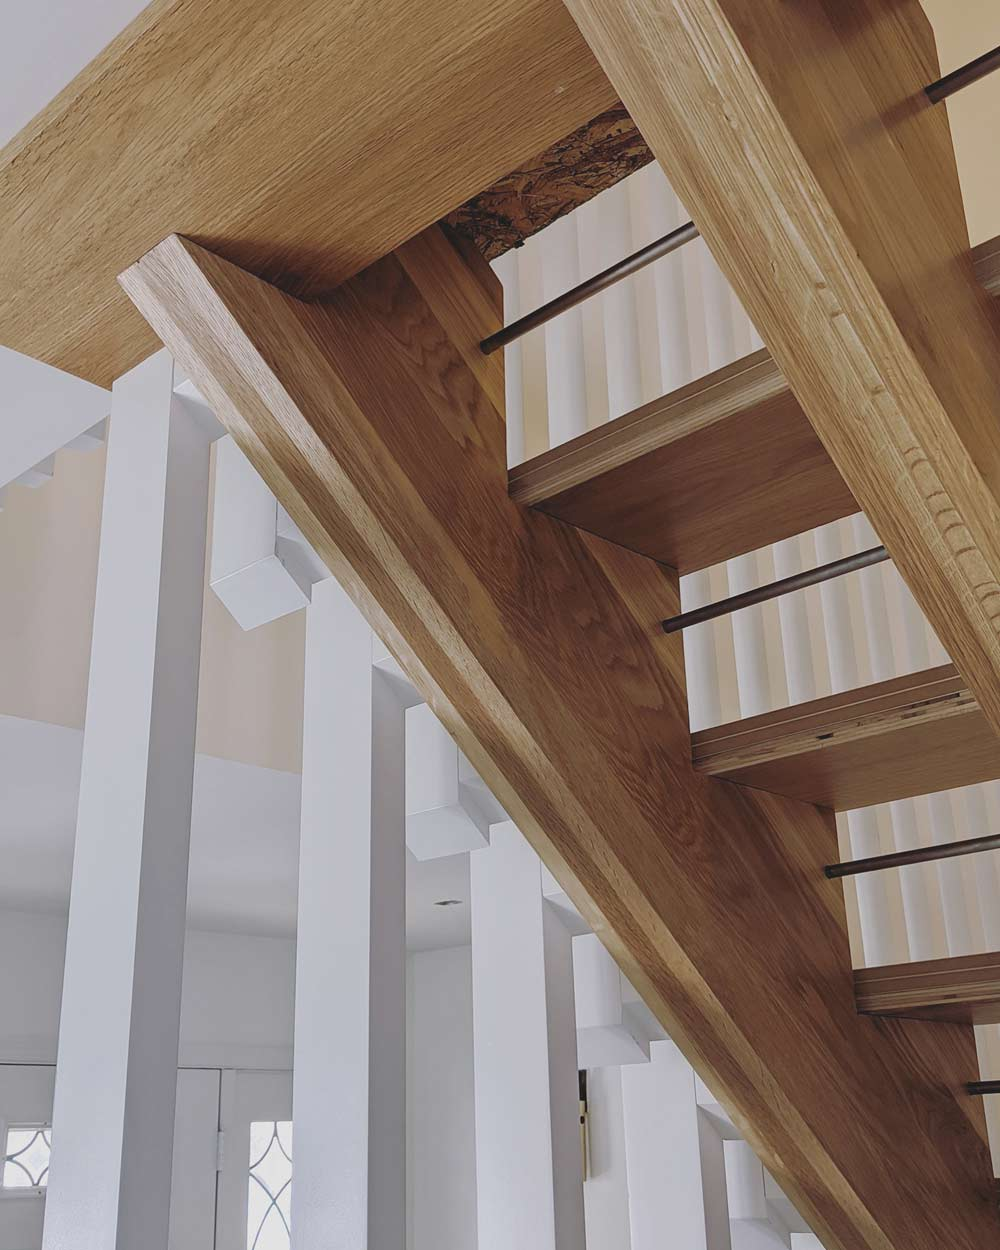 New detailed oak stair includes stainless steel rods to keep open riser openings under 4 inches, and contrasts nicely with vertical painted Poplar slatwall details - Scandinavian Modern Interior - Indianapolis, IN - Trader's Point